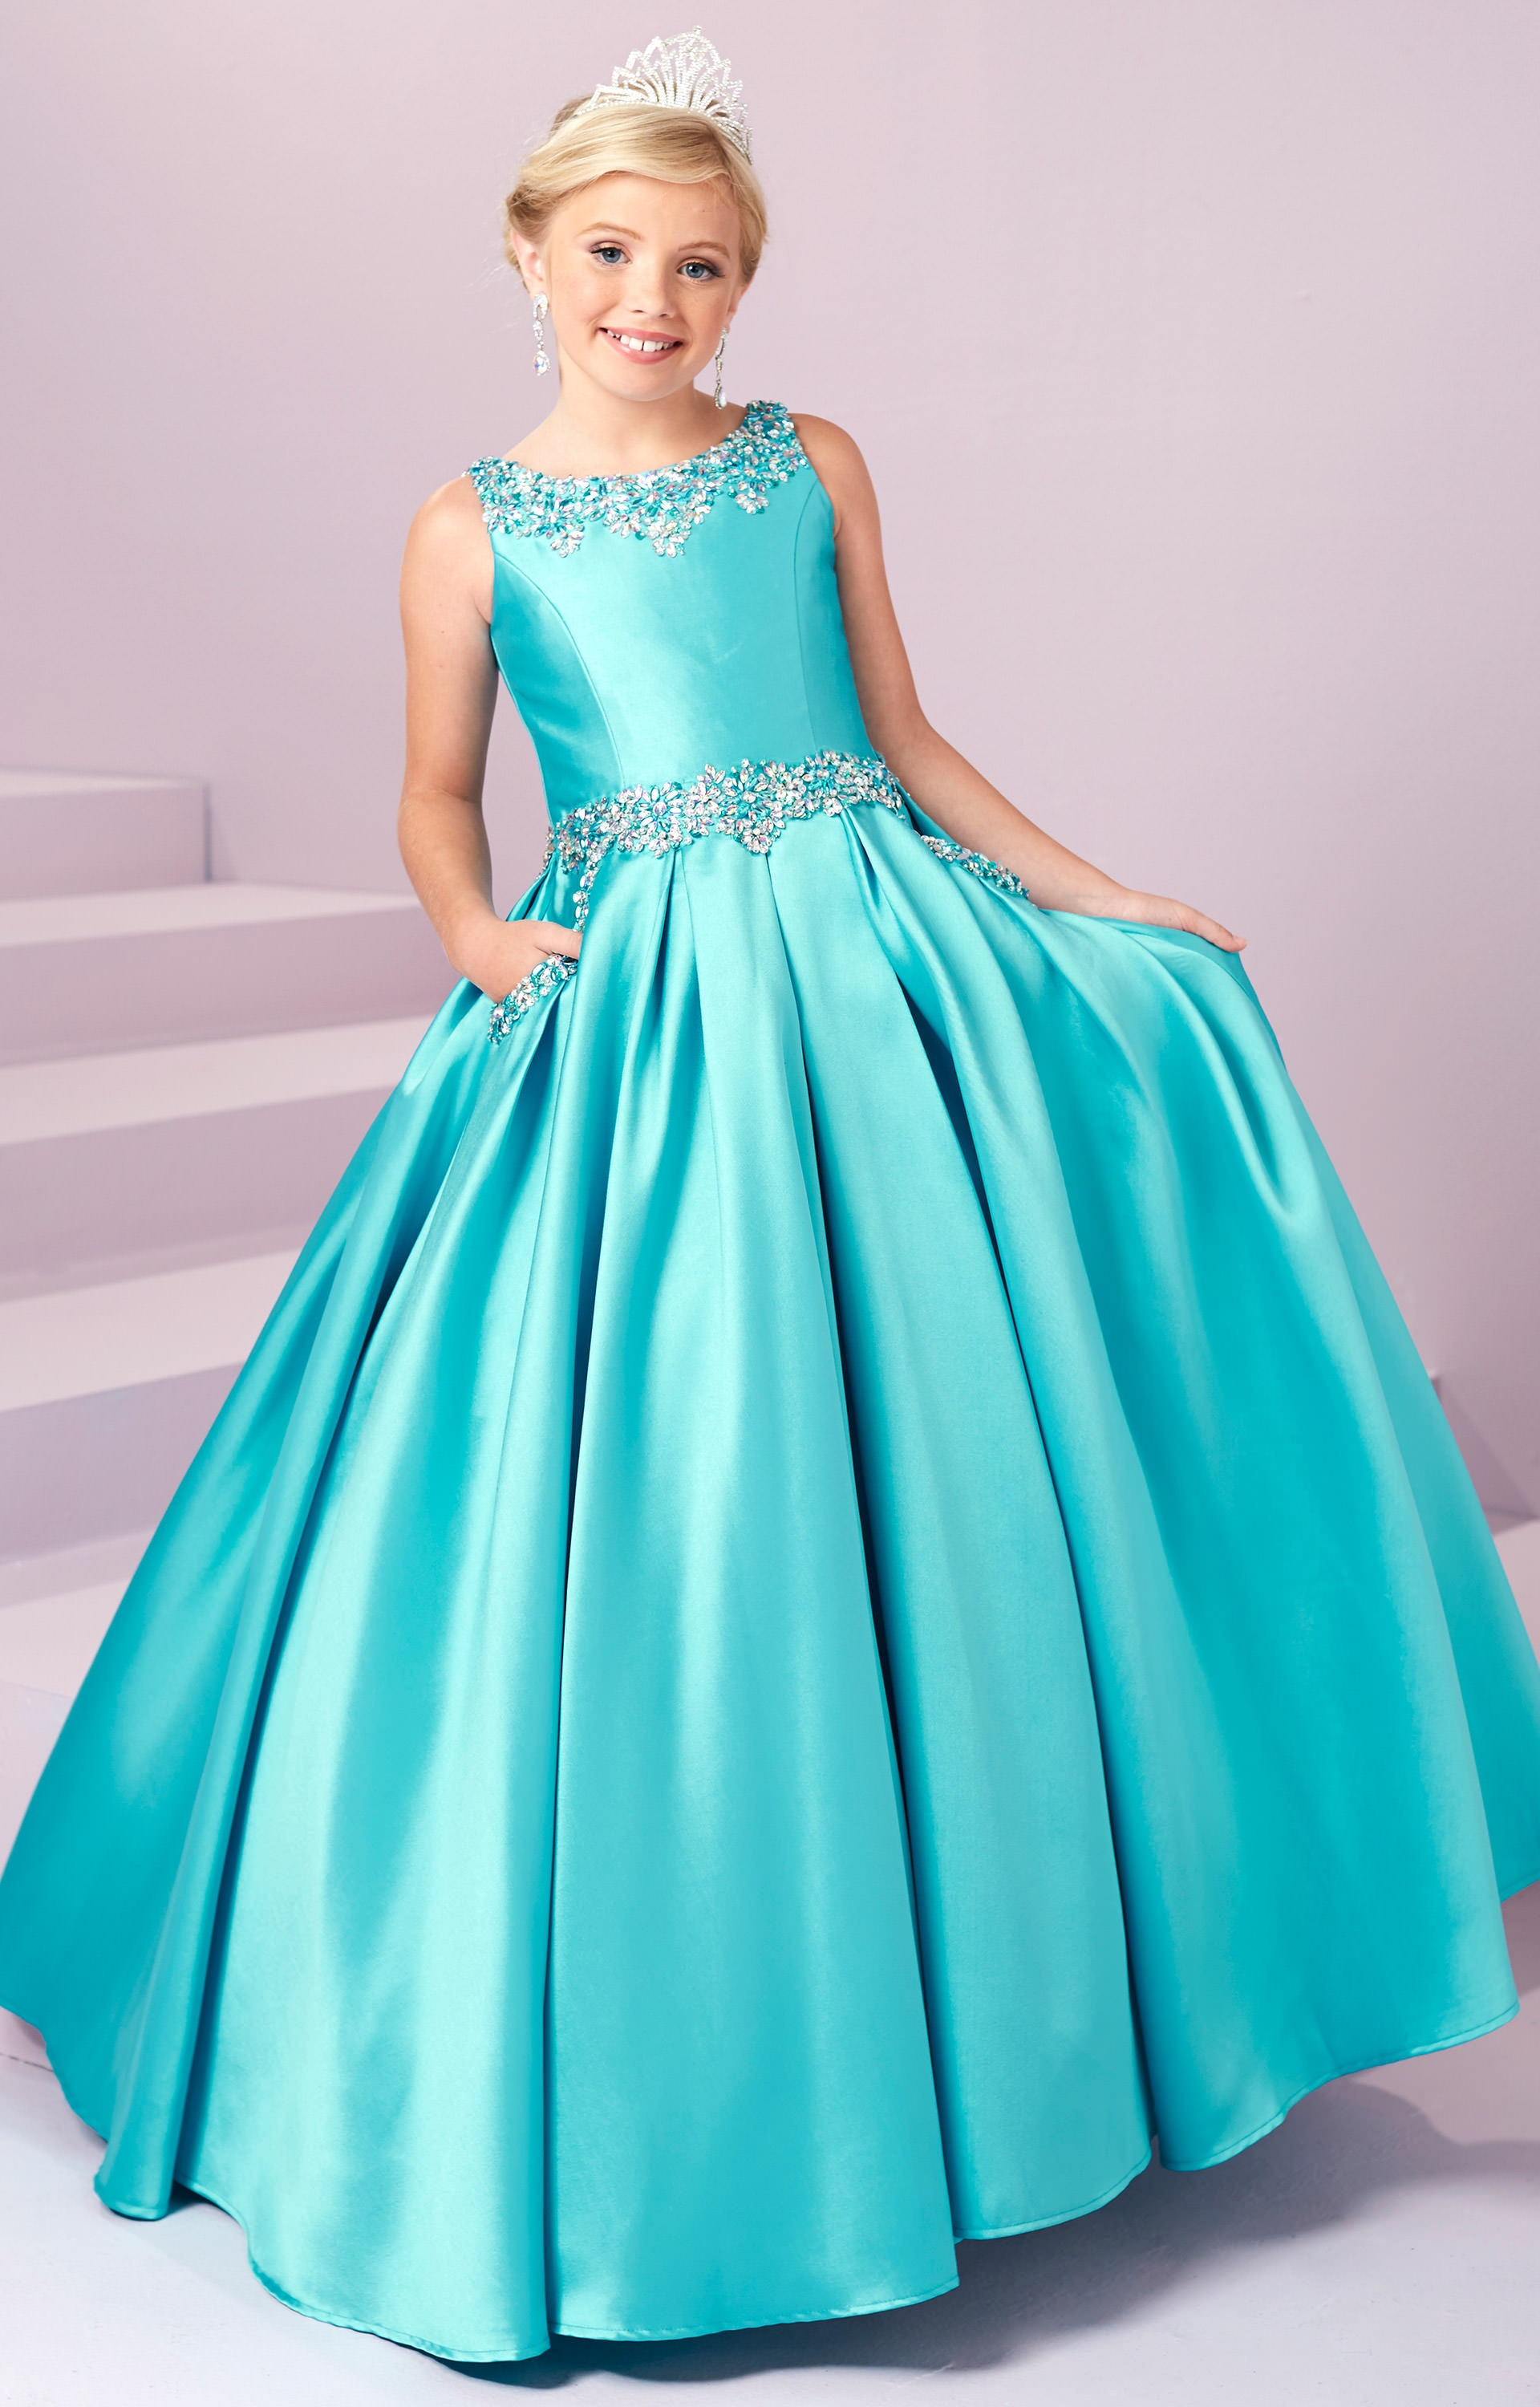 Tiffany Princess 13485 Silk Ballgown Dress Prom Dress